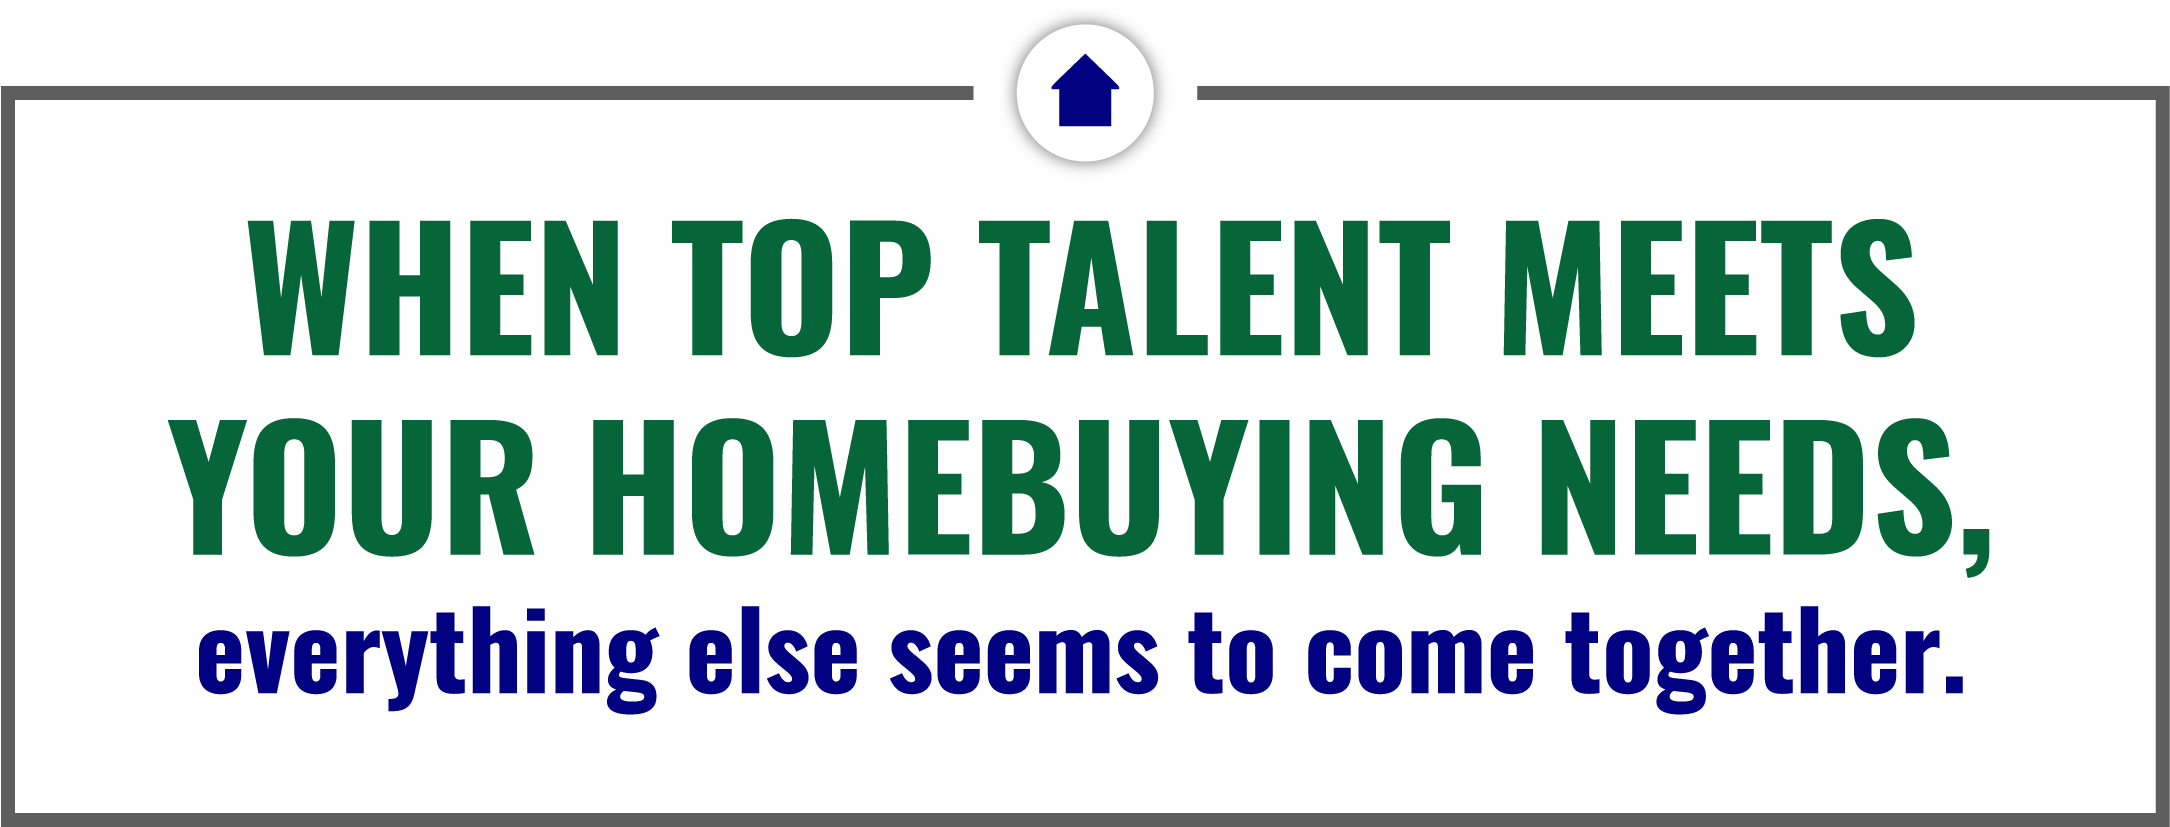 When top talent meets your homebuying needs, everything else seems to come together